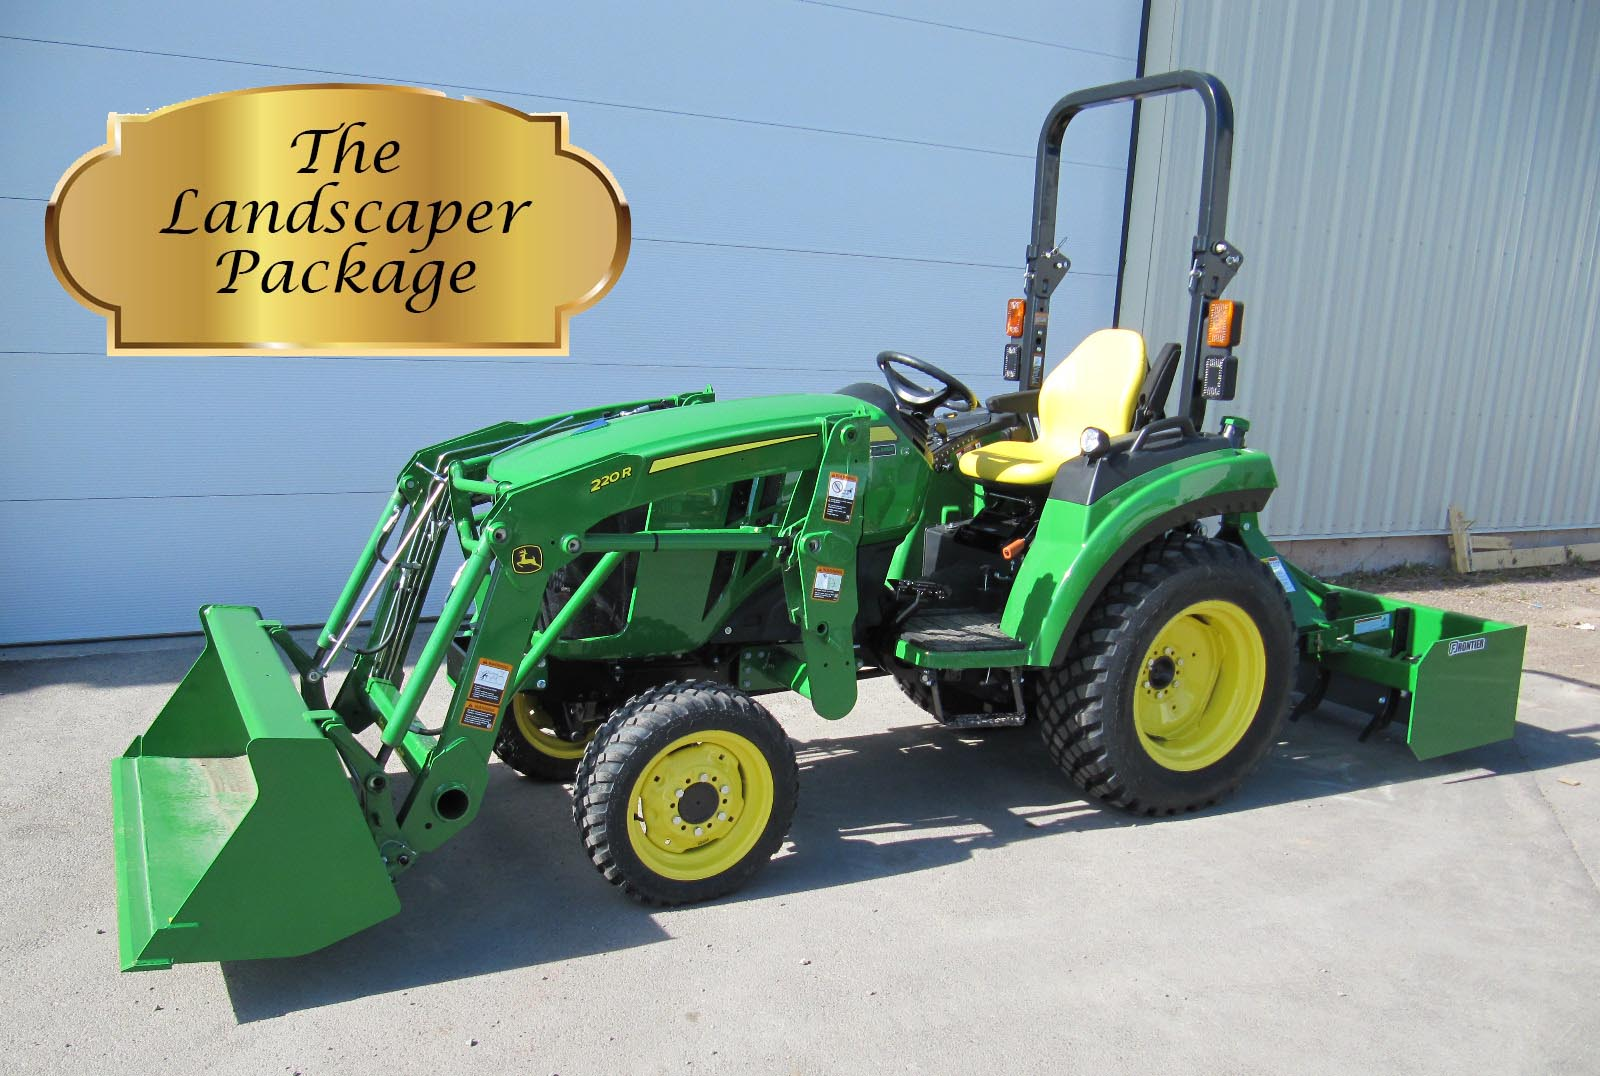 The Landscaper Package